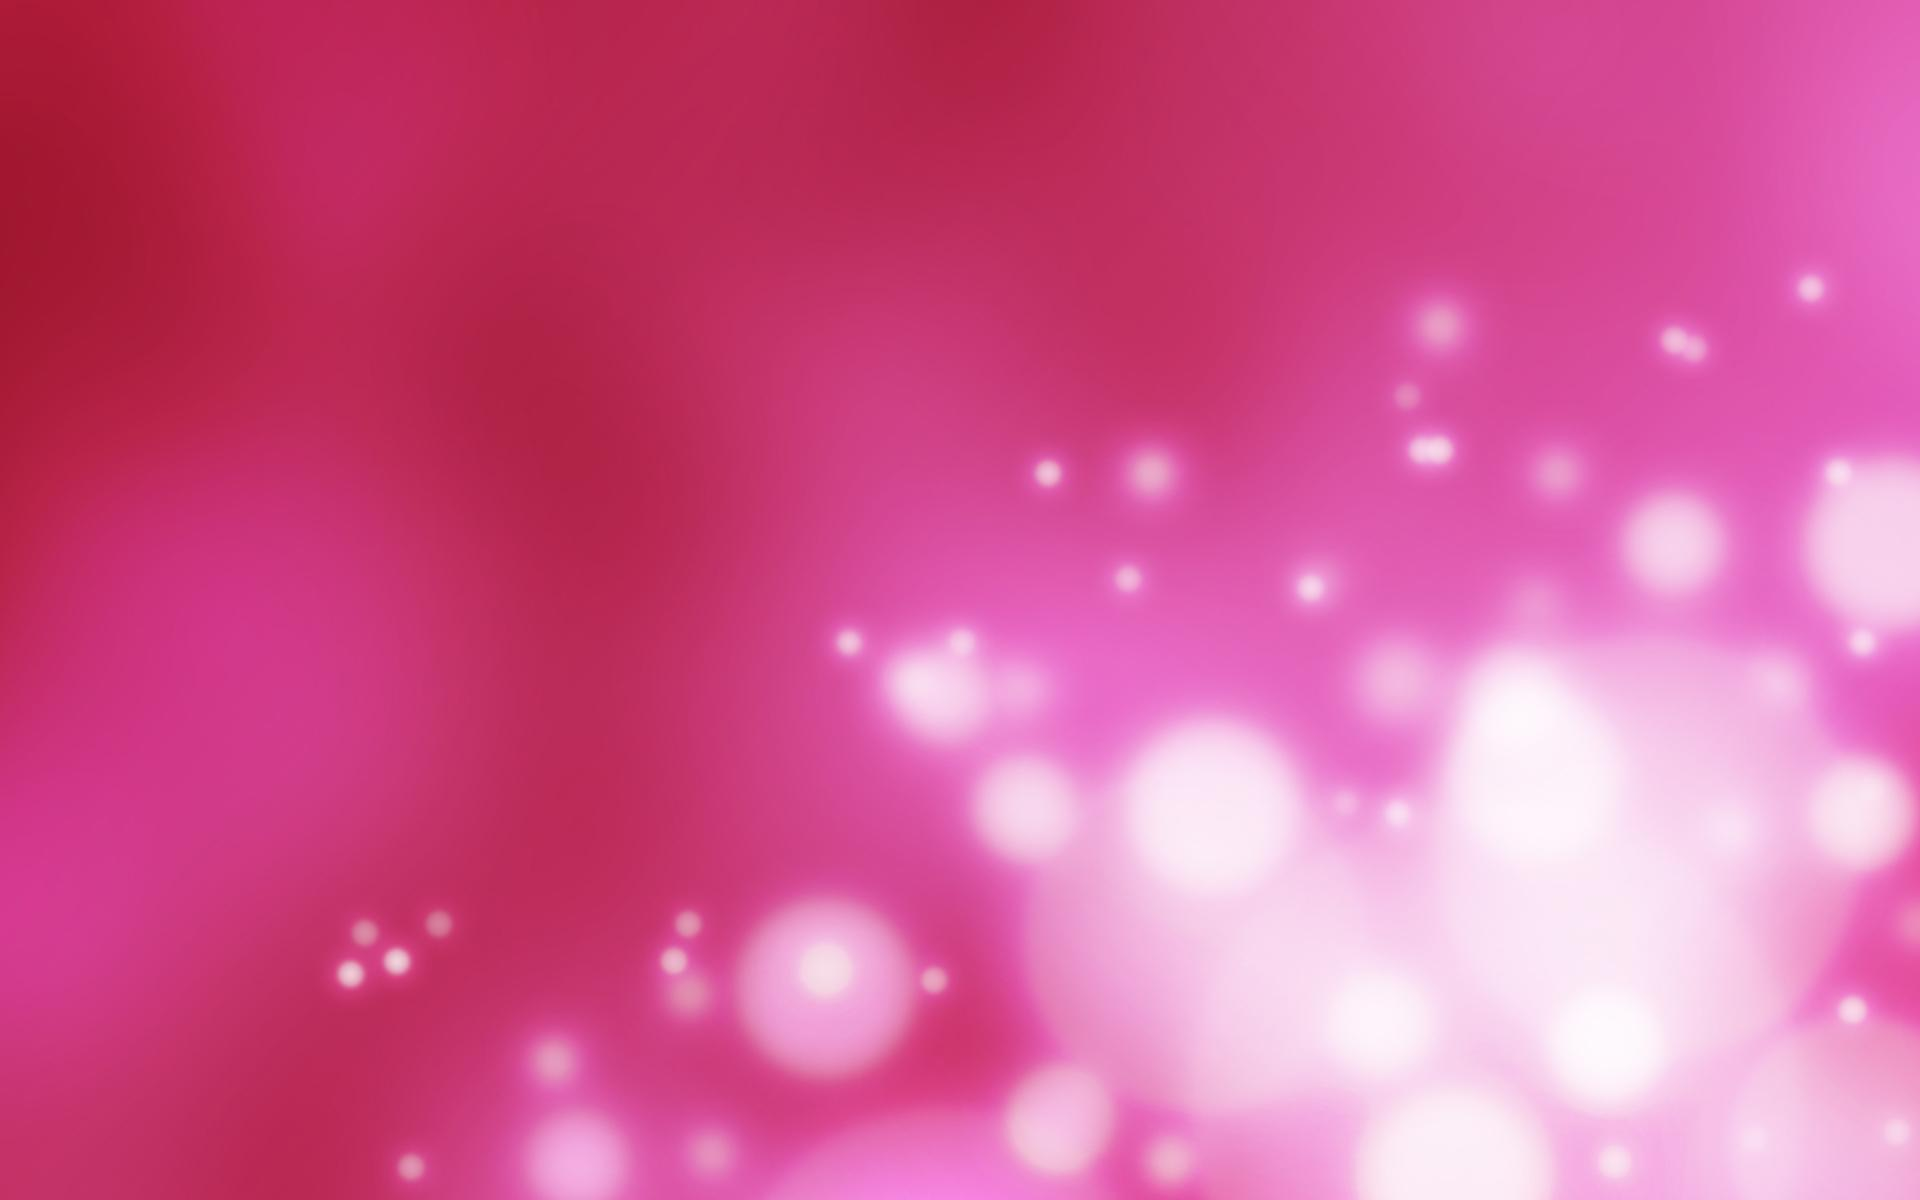 Pink Wallpaper Background